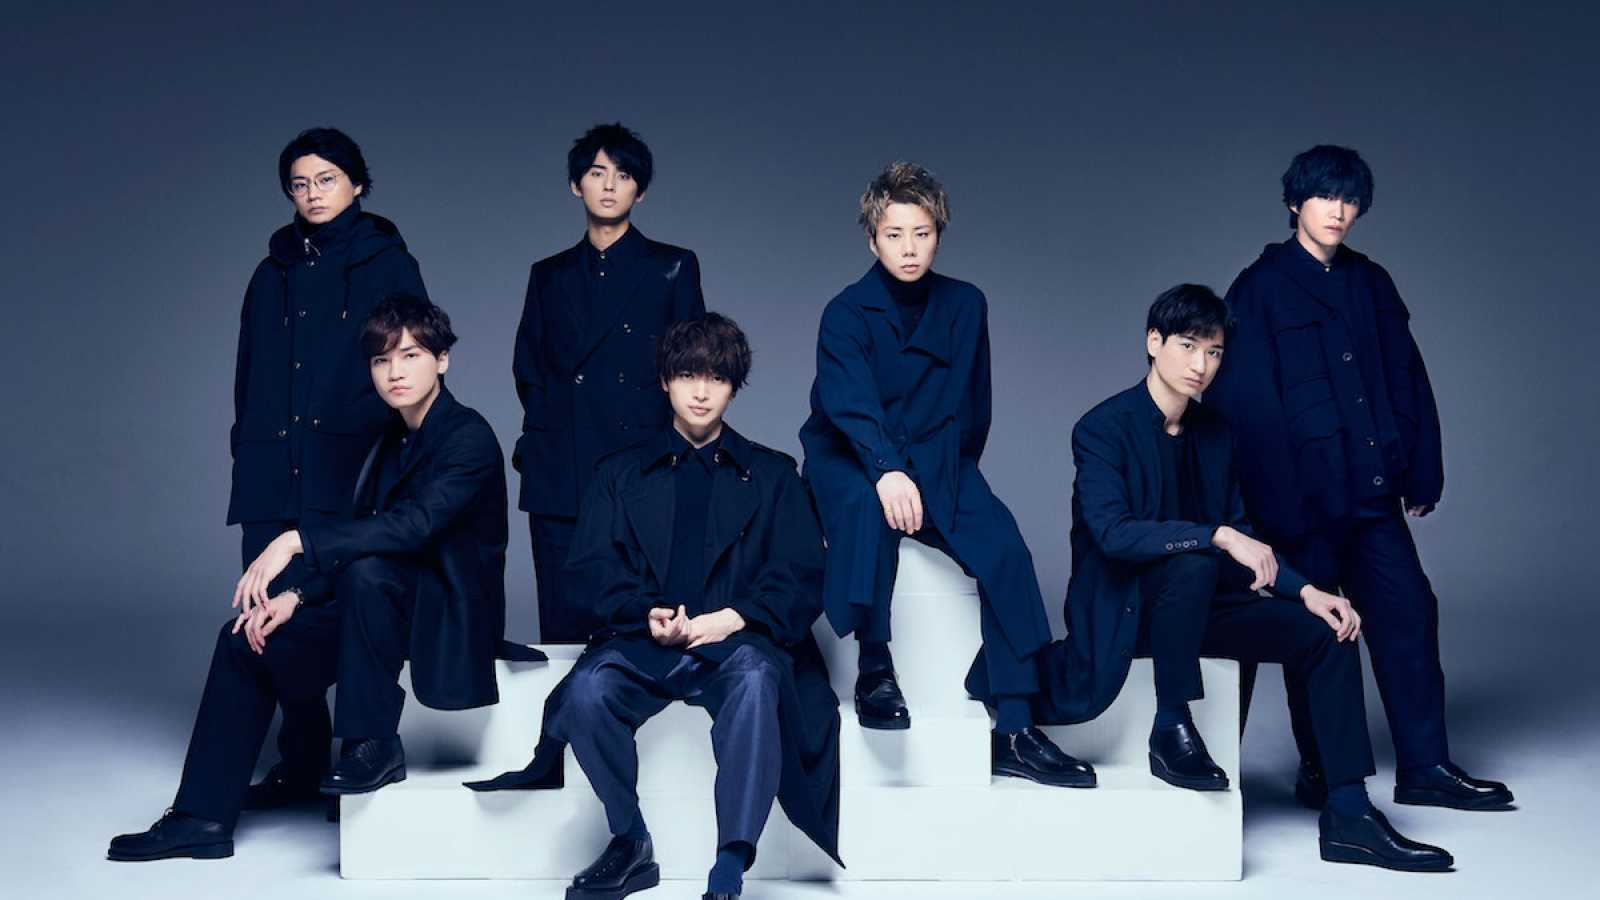 Kis-My-Ft2 Members Premiere Solo Music Videos on YouTube © Kis-My-Ft2. All rights reserved.